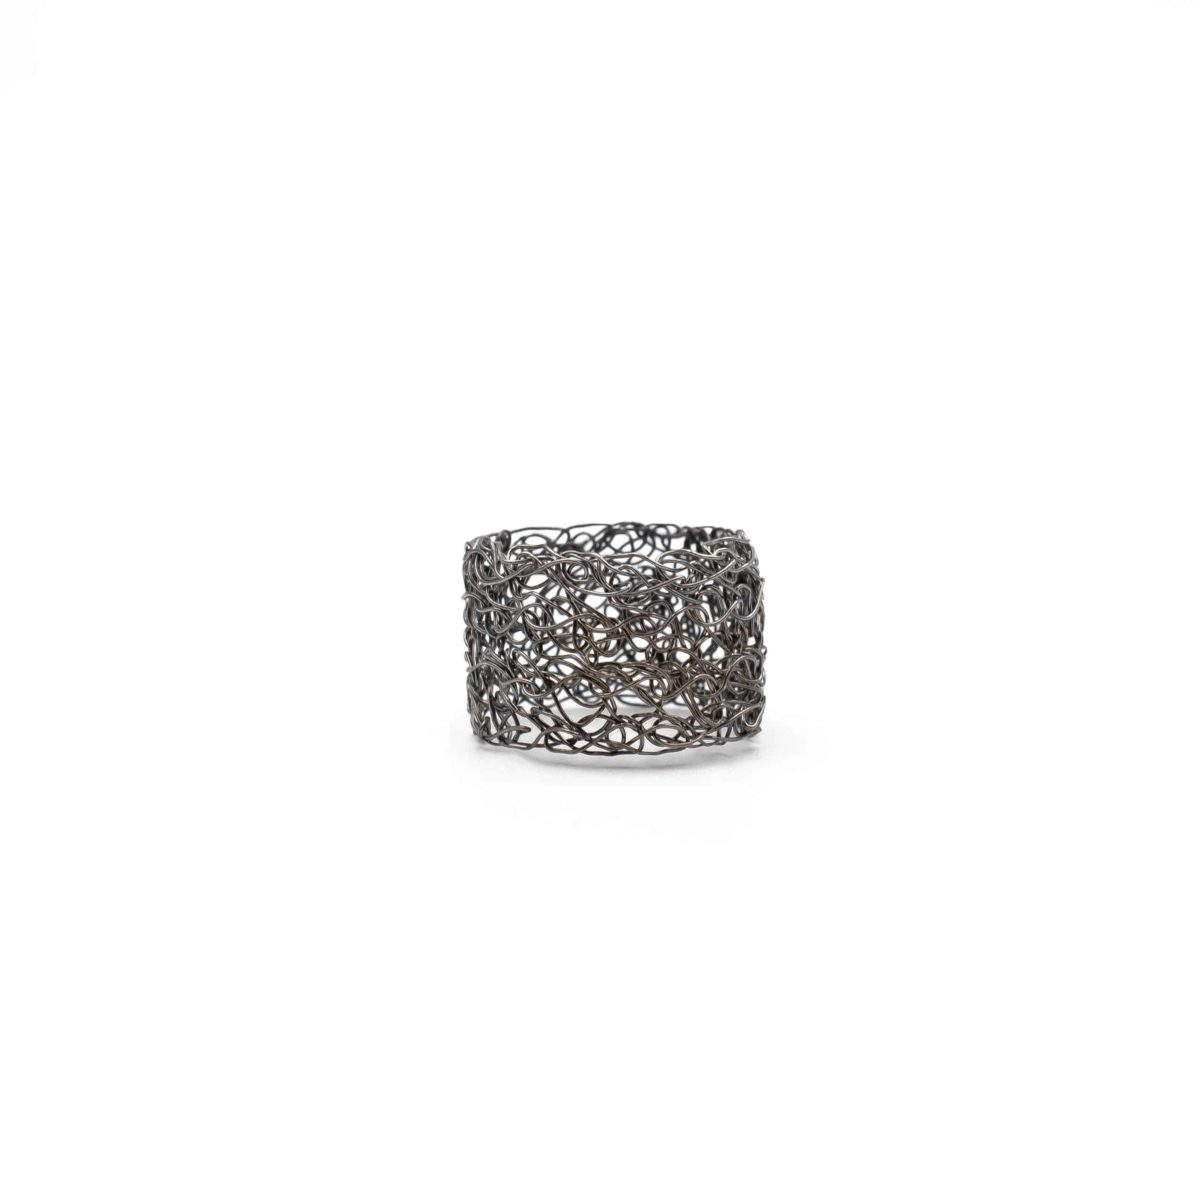 front view of adjustable black rhodium band ring